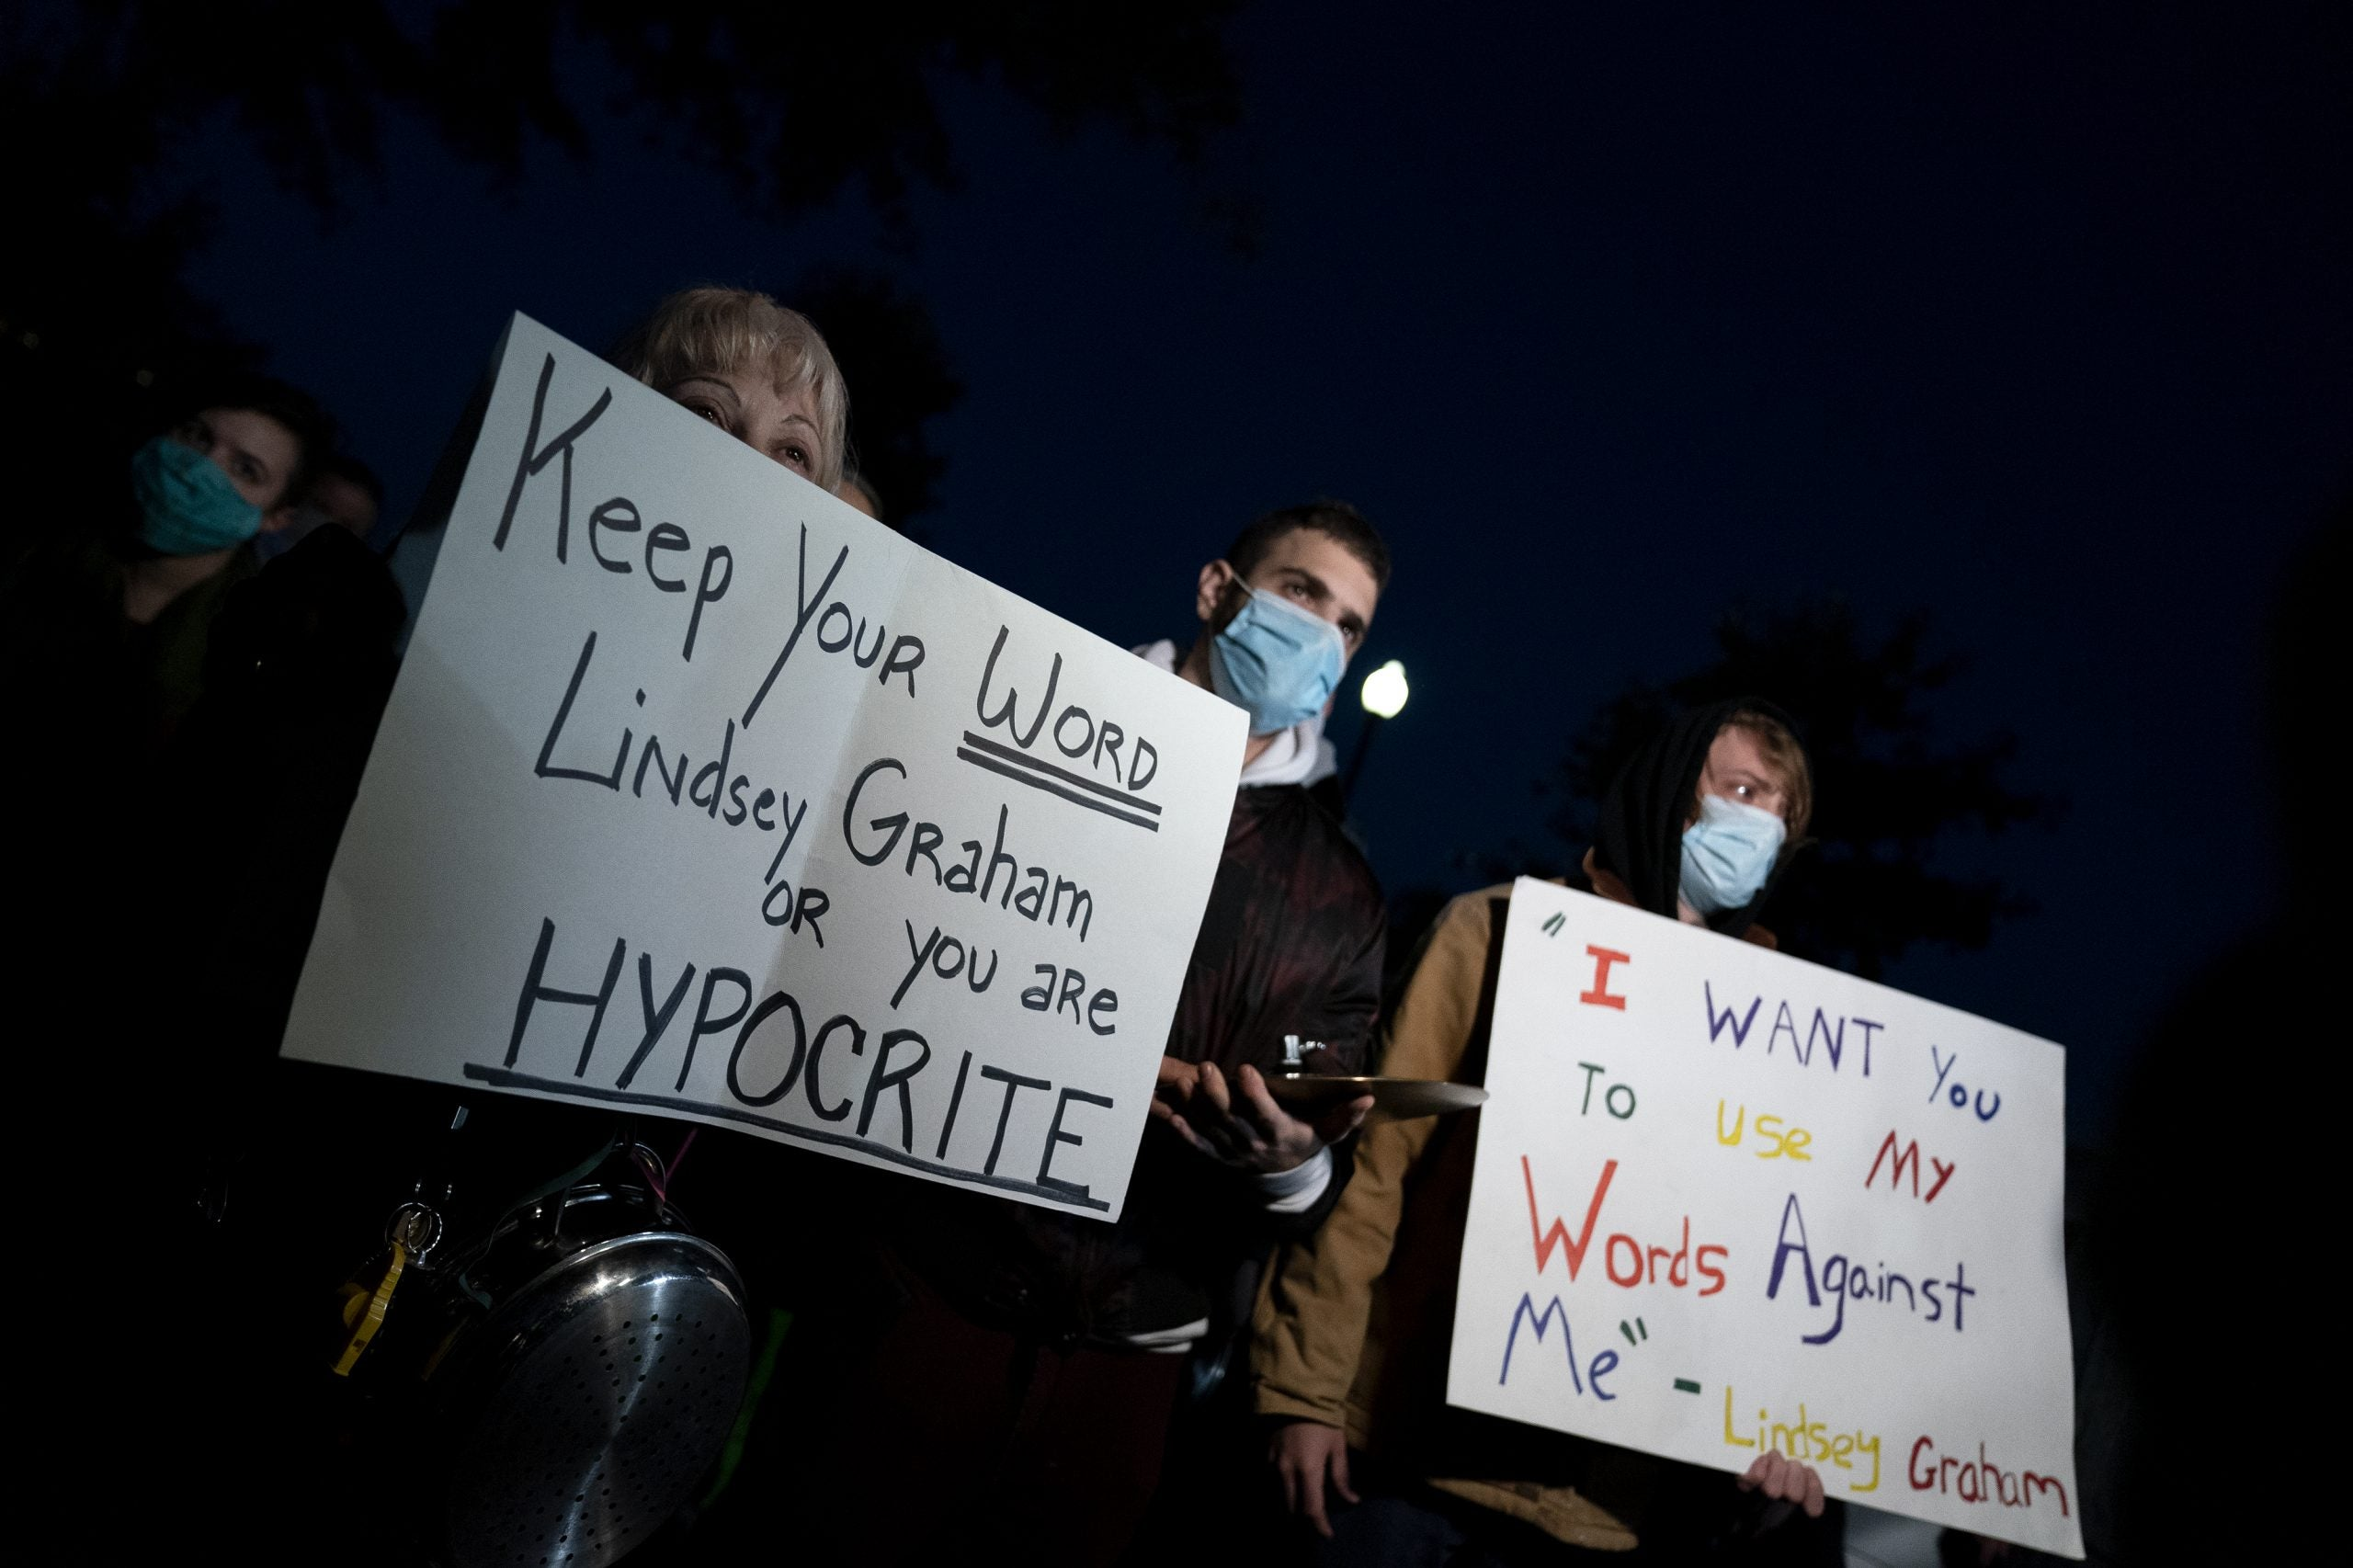 WASHINGTON, DC - SEPTEMBER 21: Protestors gather outside the residence of U.S. Sen. Lindsey Graham (R-SC) on September 21, 2020 in Washington, DC. Graham announced that he would support a vote on U.S. President Donald Trump's Supreme Court pick, after stating in 2016 that there should be no vote on a Supreme Court nominee during a Presidential election year. (Photo by Stefani Reynolds/Getty Images)